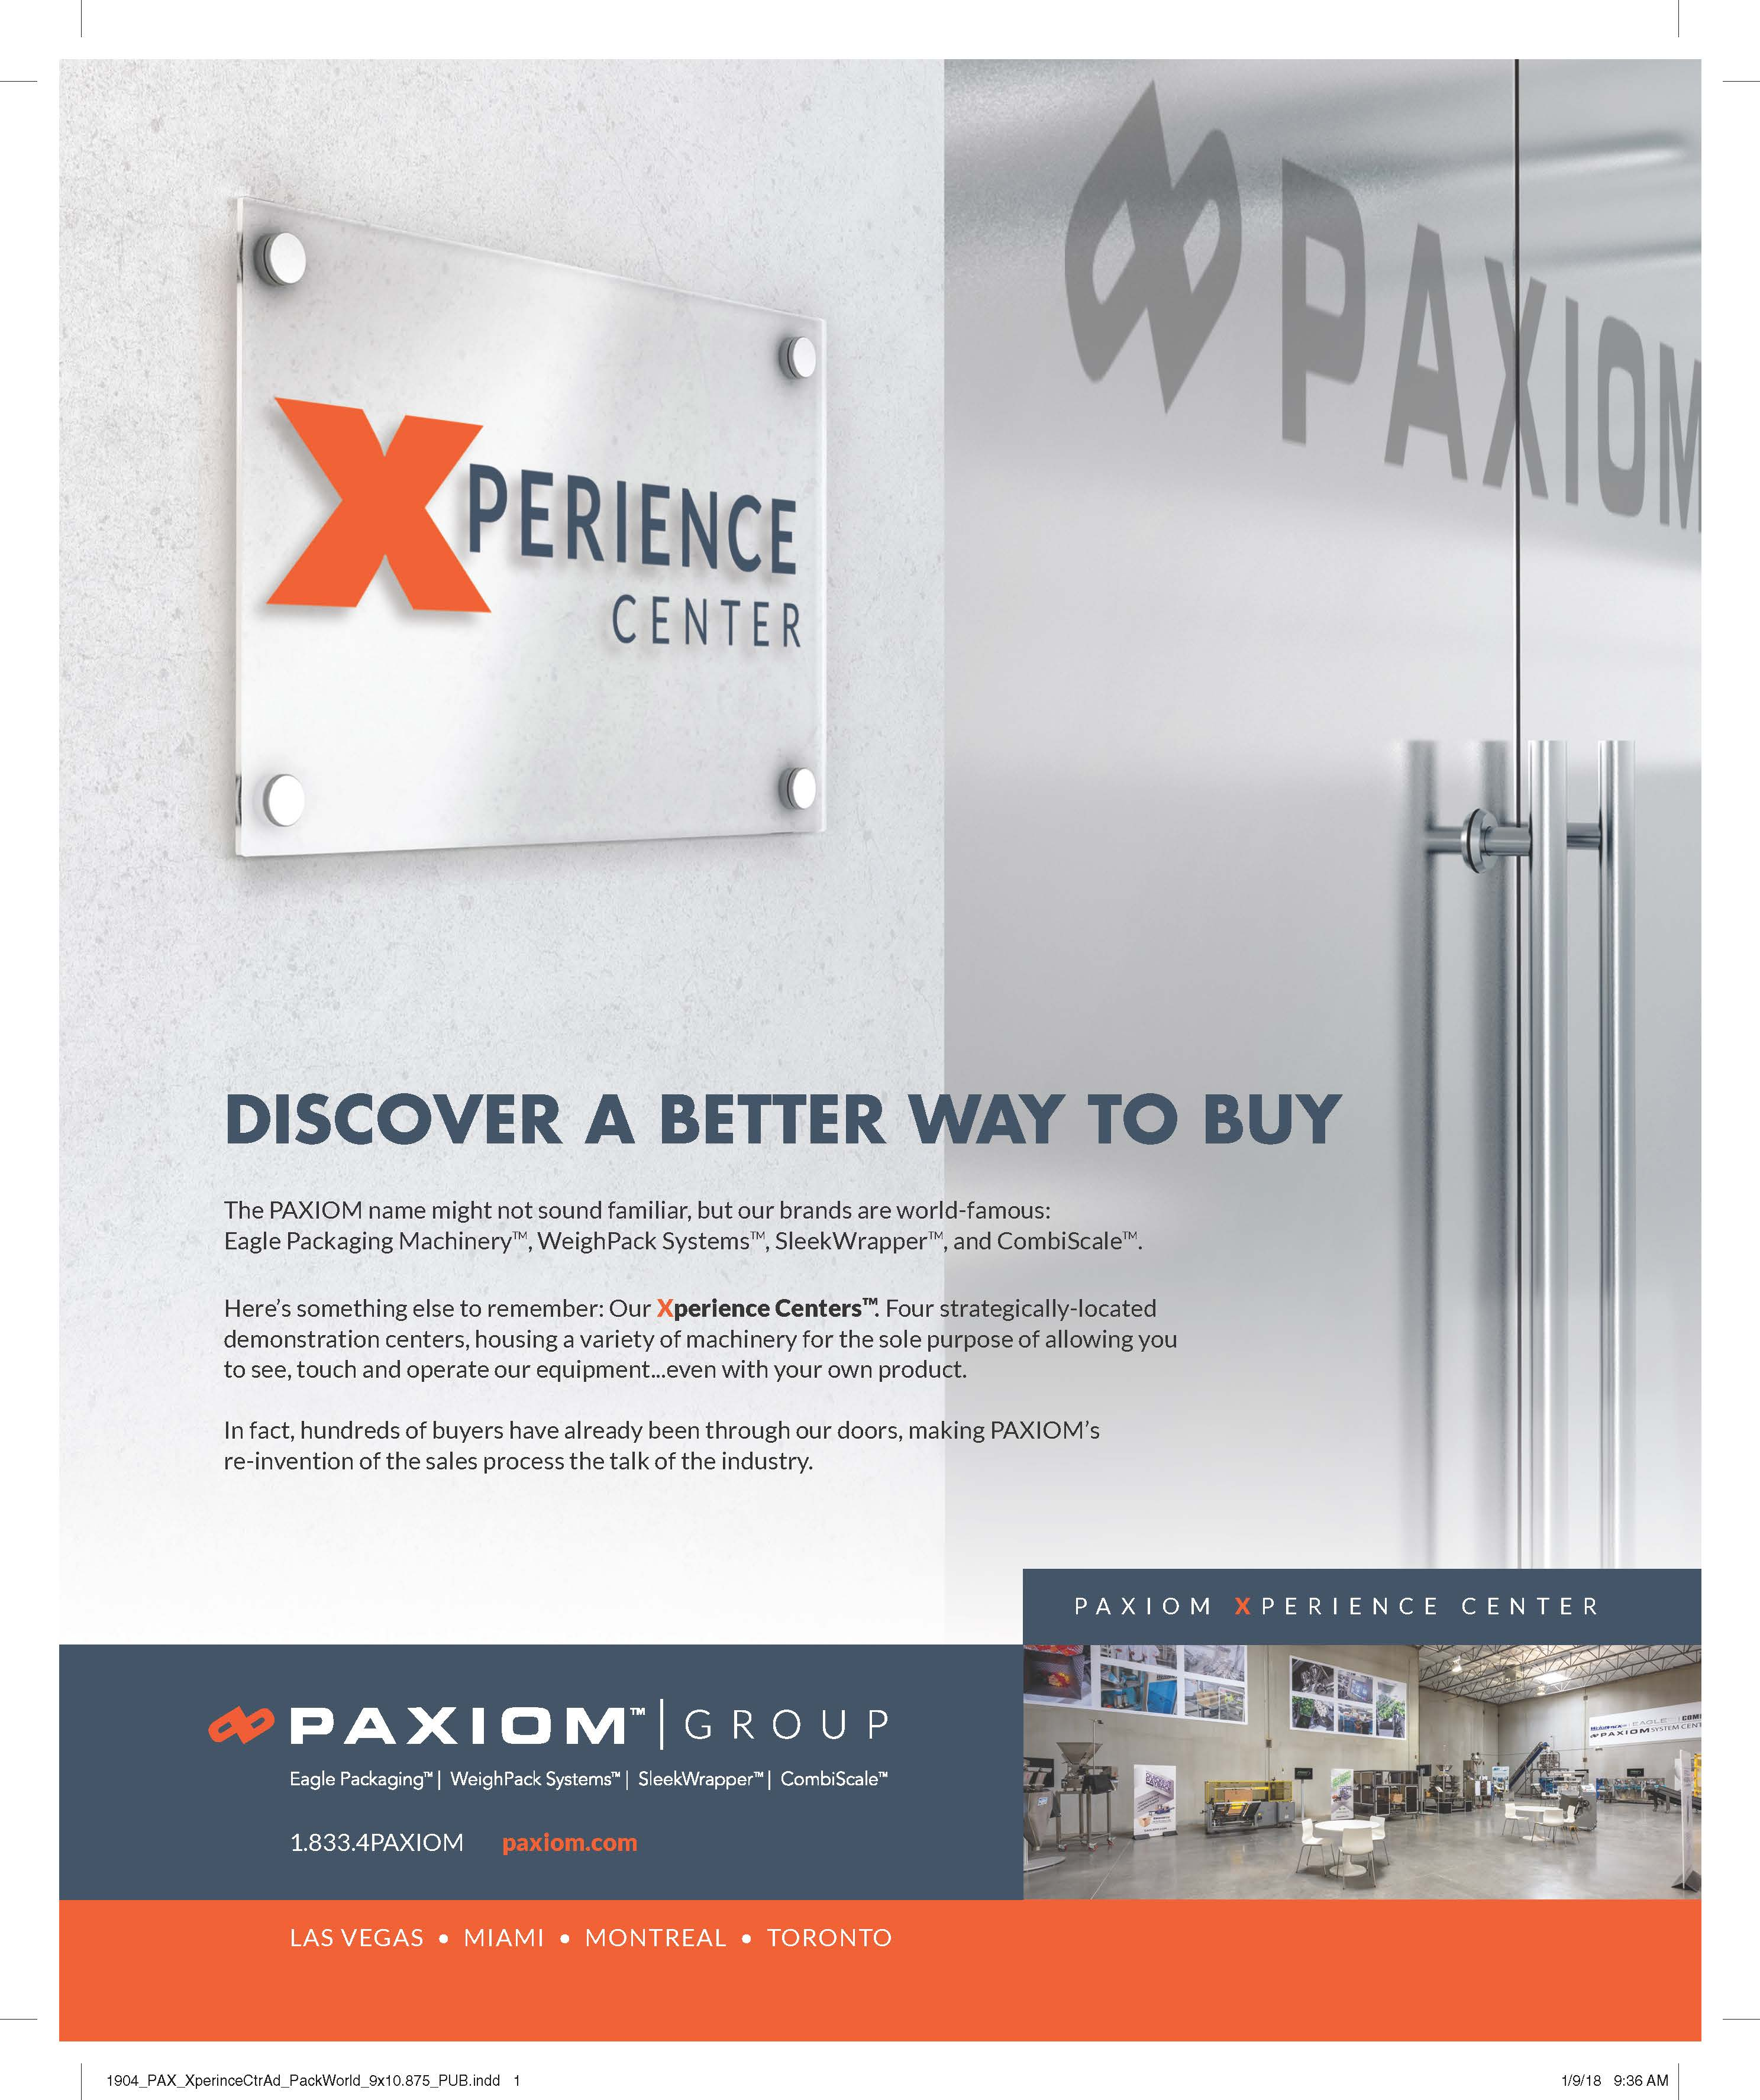 Paxiom Xperience Center